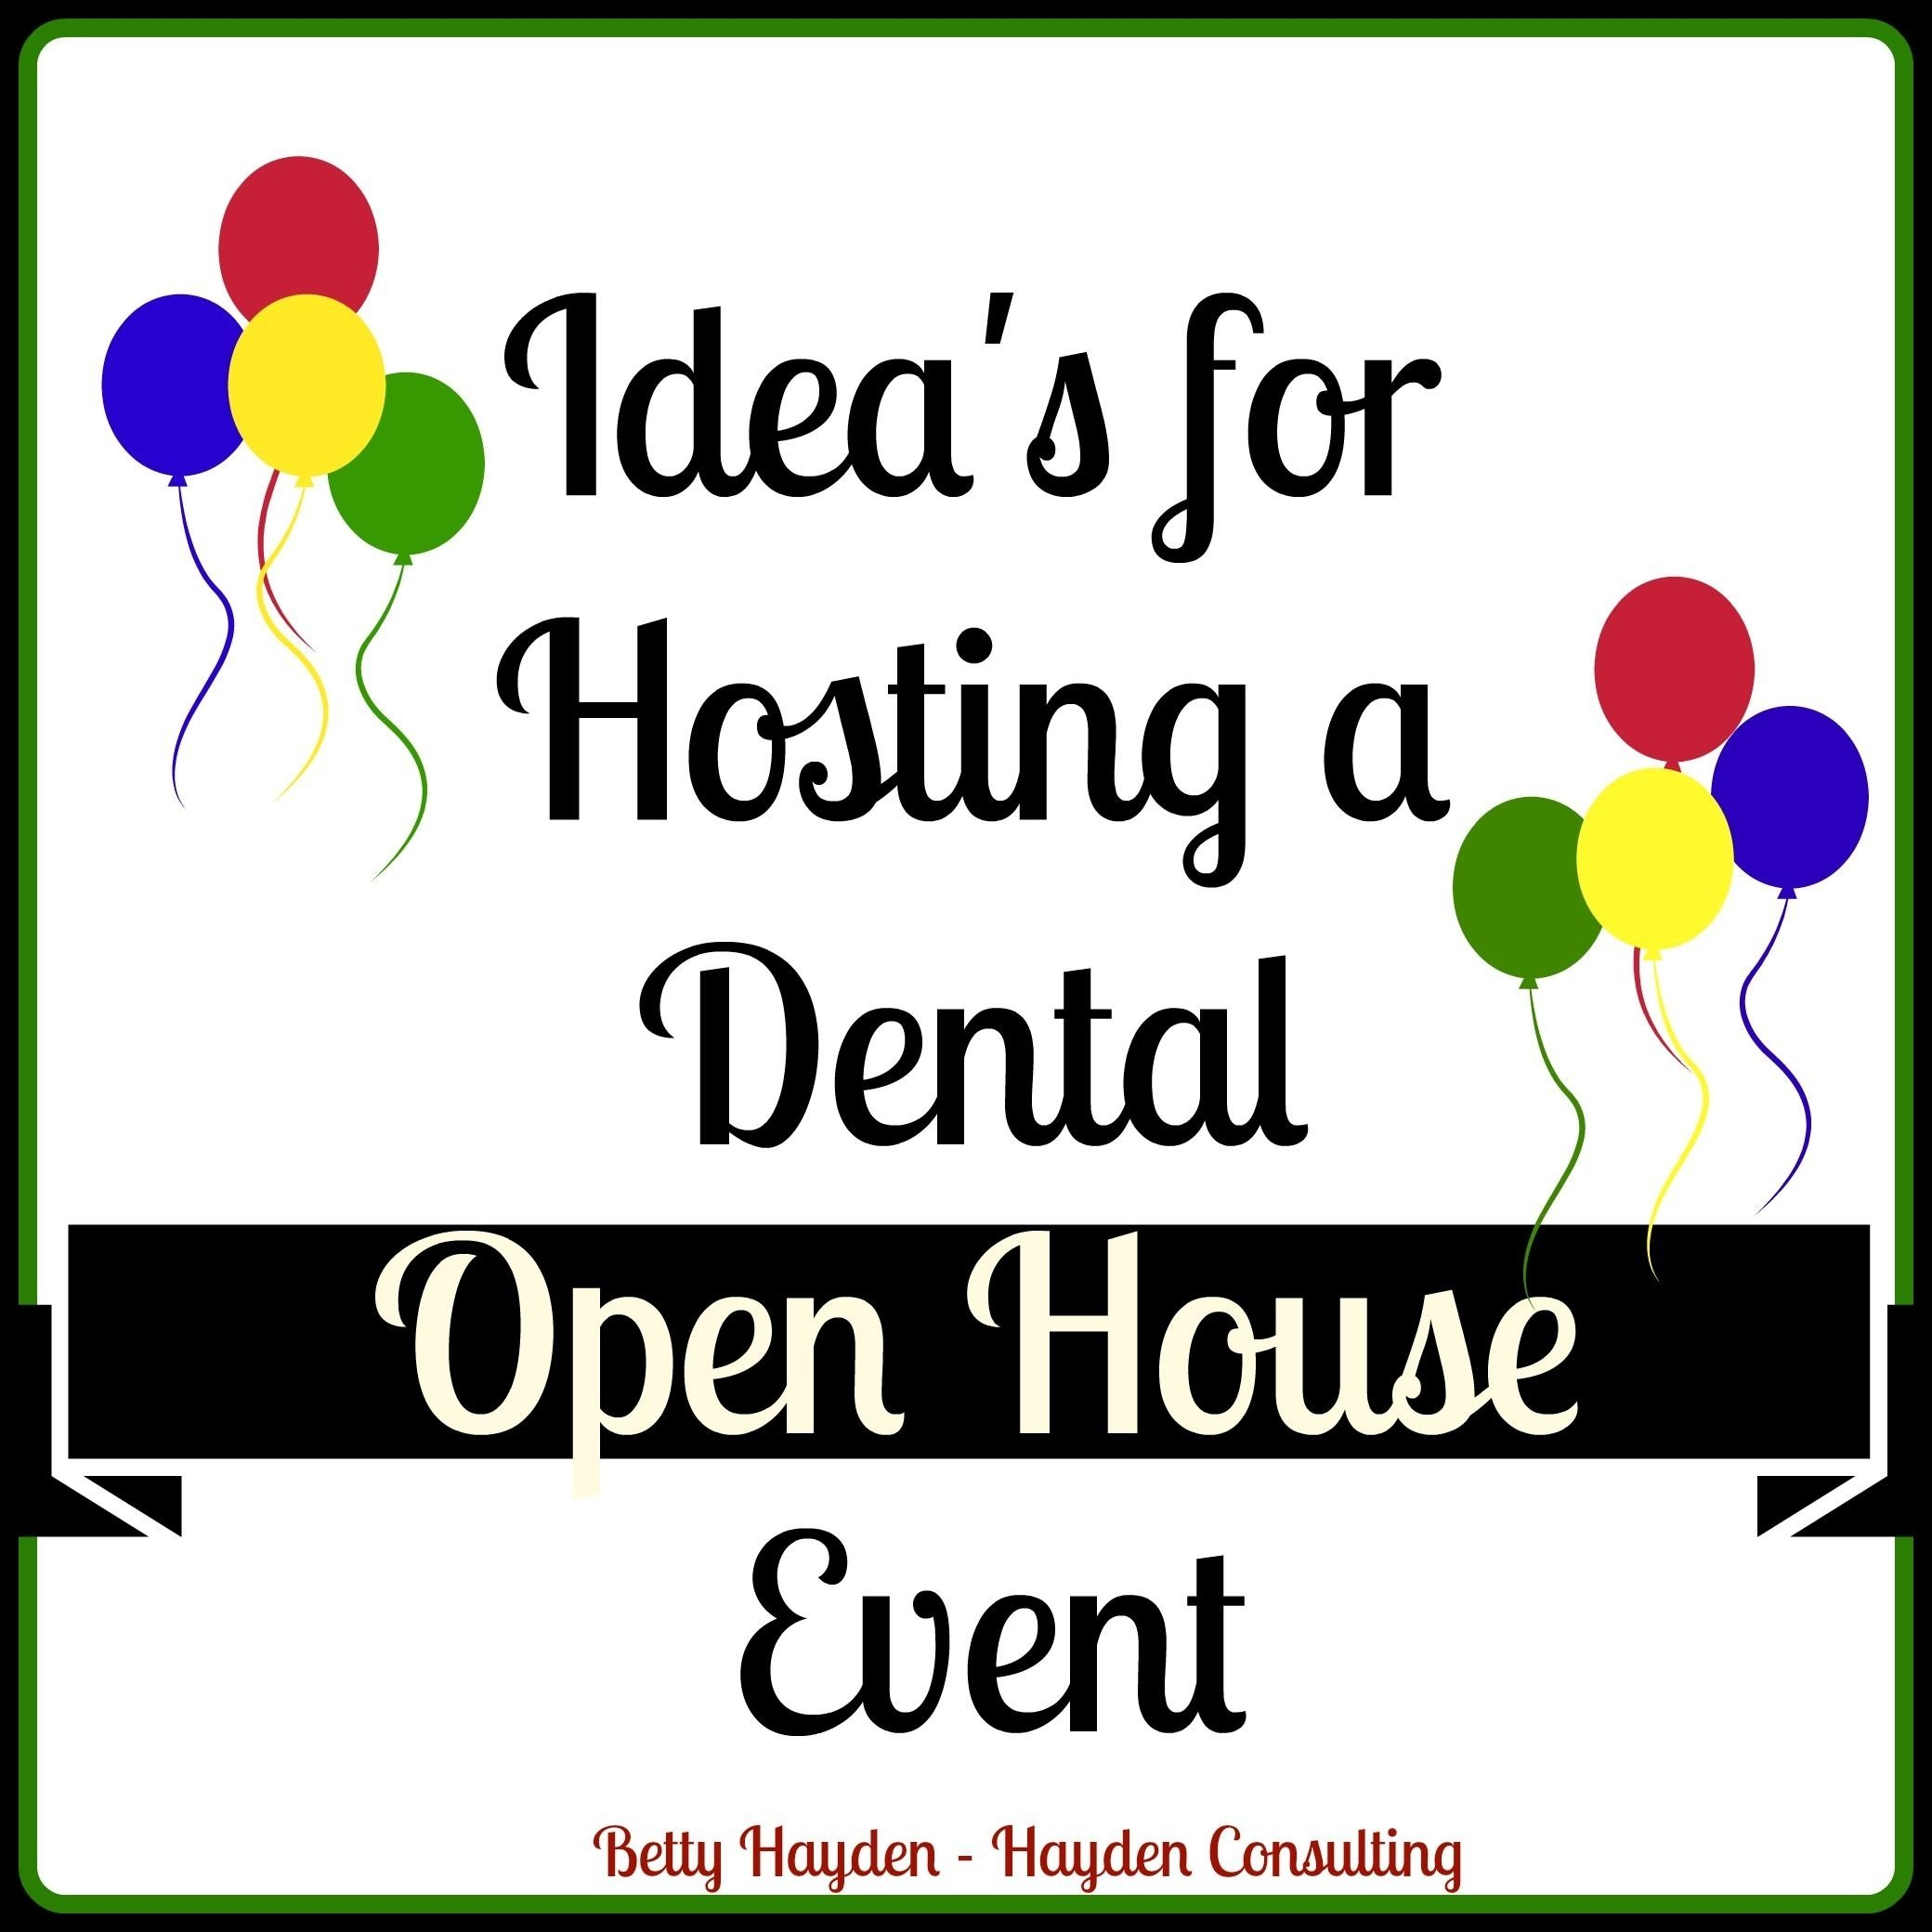 10 Unique Marketing Ideas For Dental Offices dental office open house event ideas event themes dental and luau